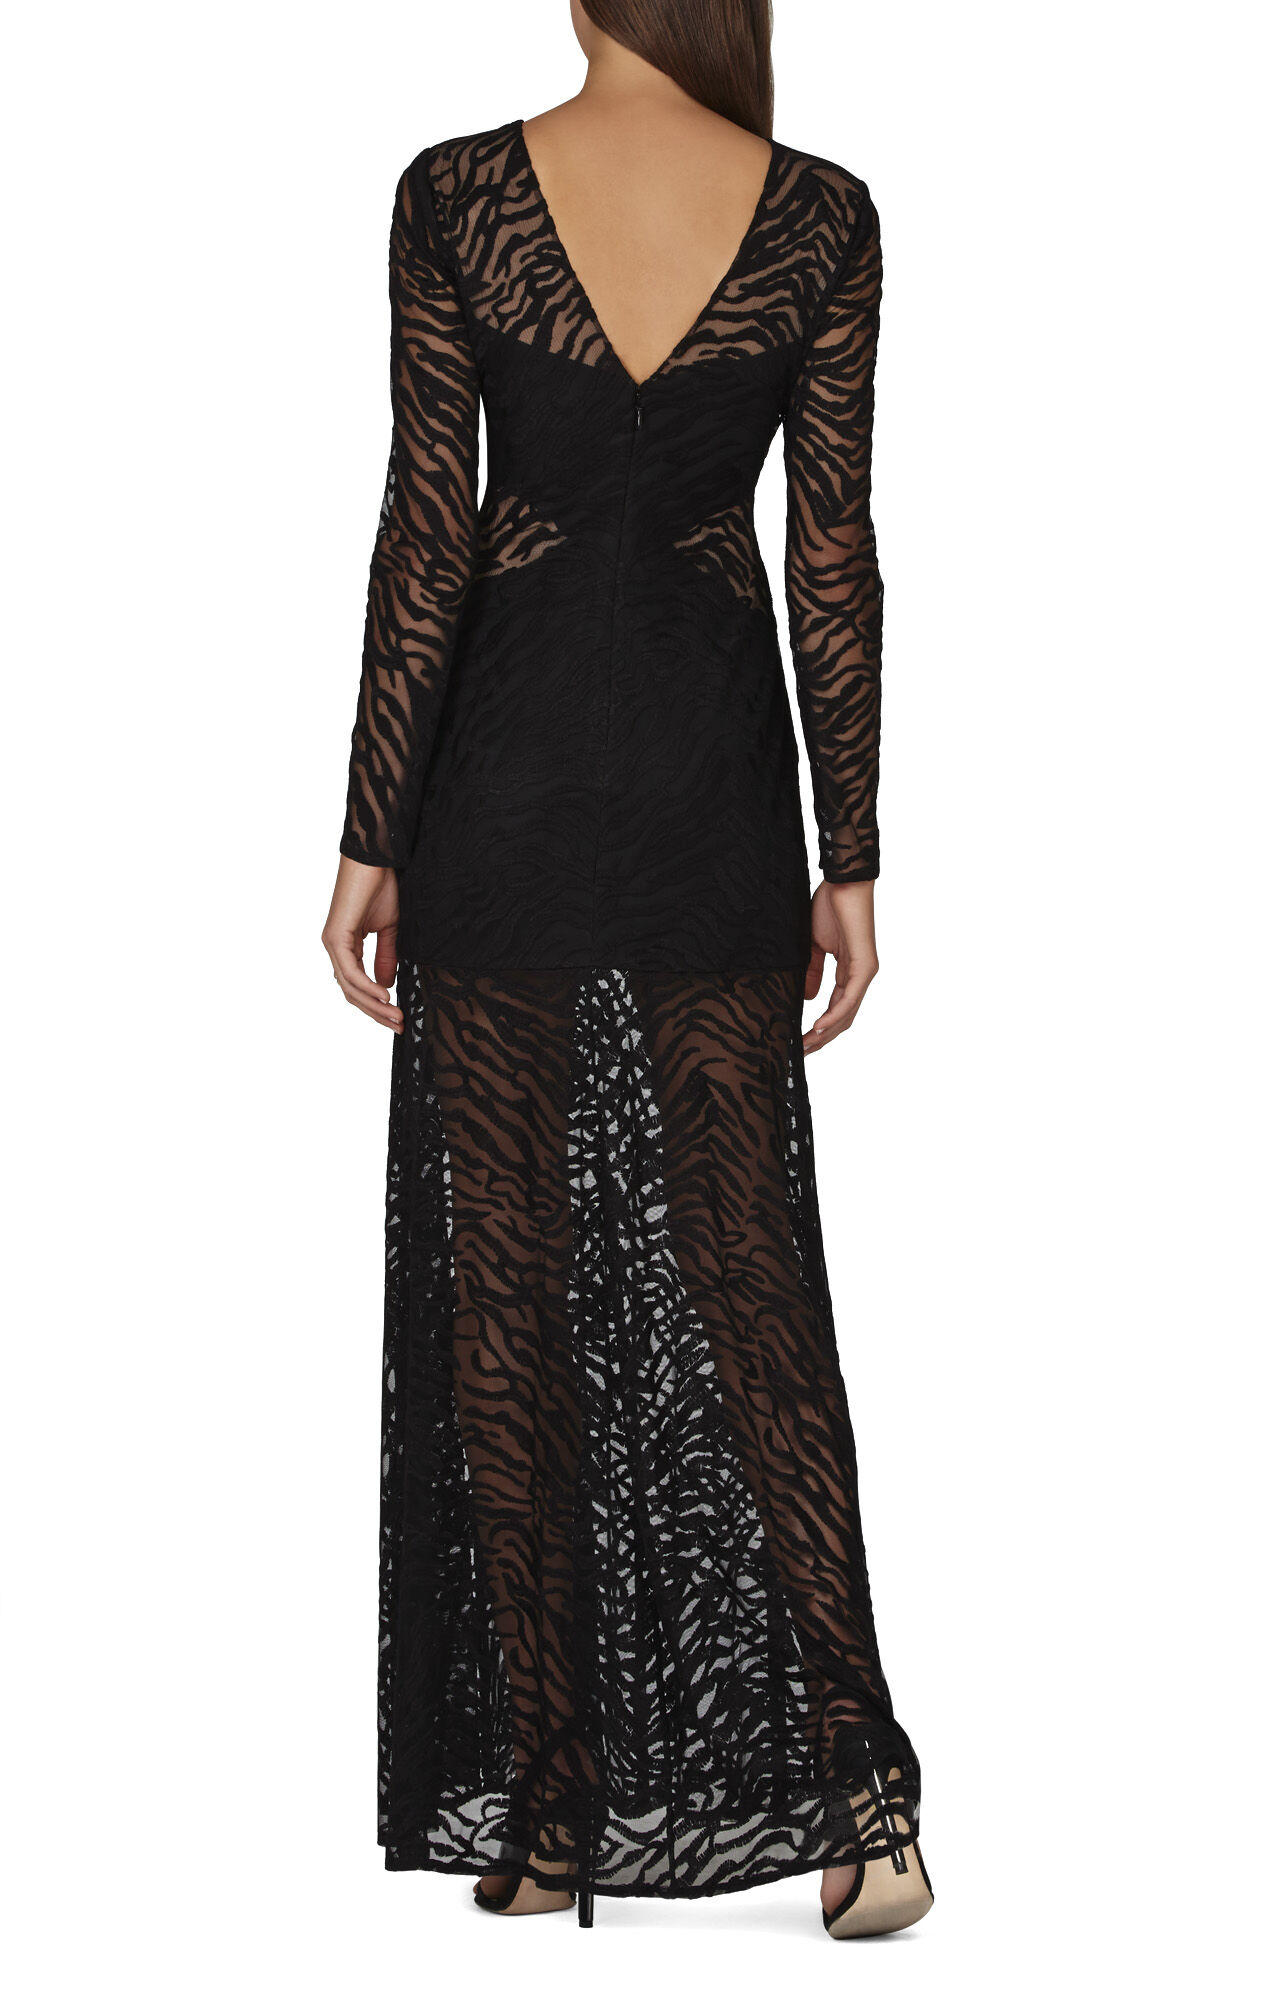 Alexia Embroidered Blocked-Mesh Dress